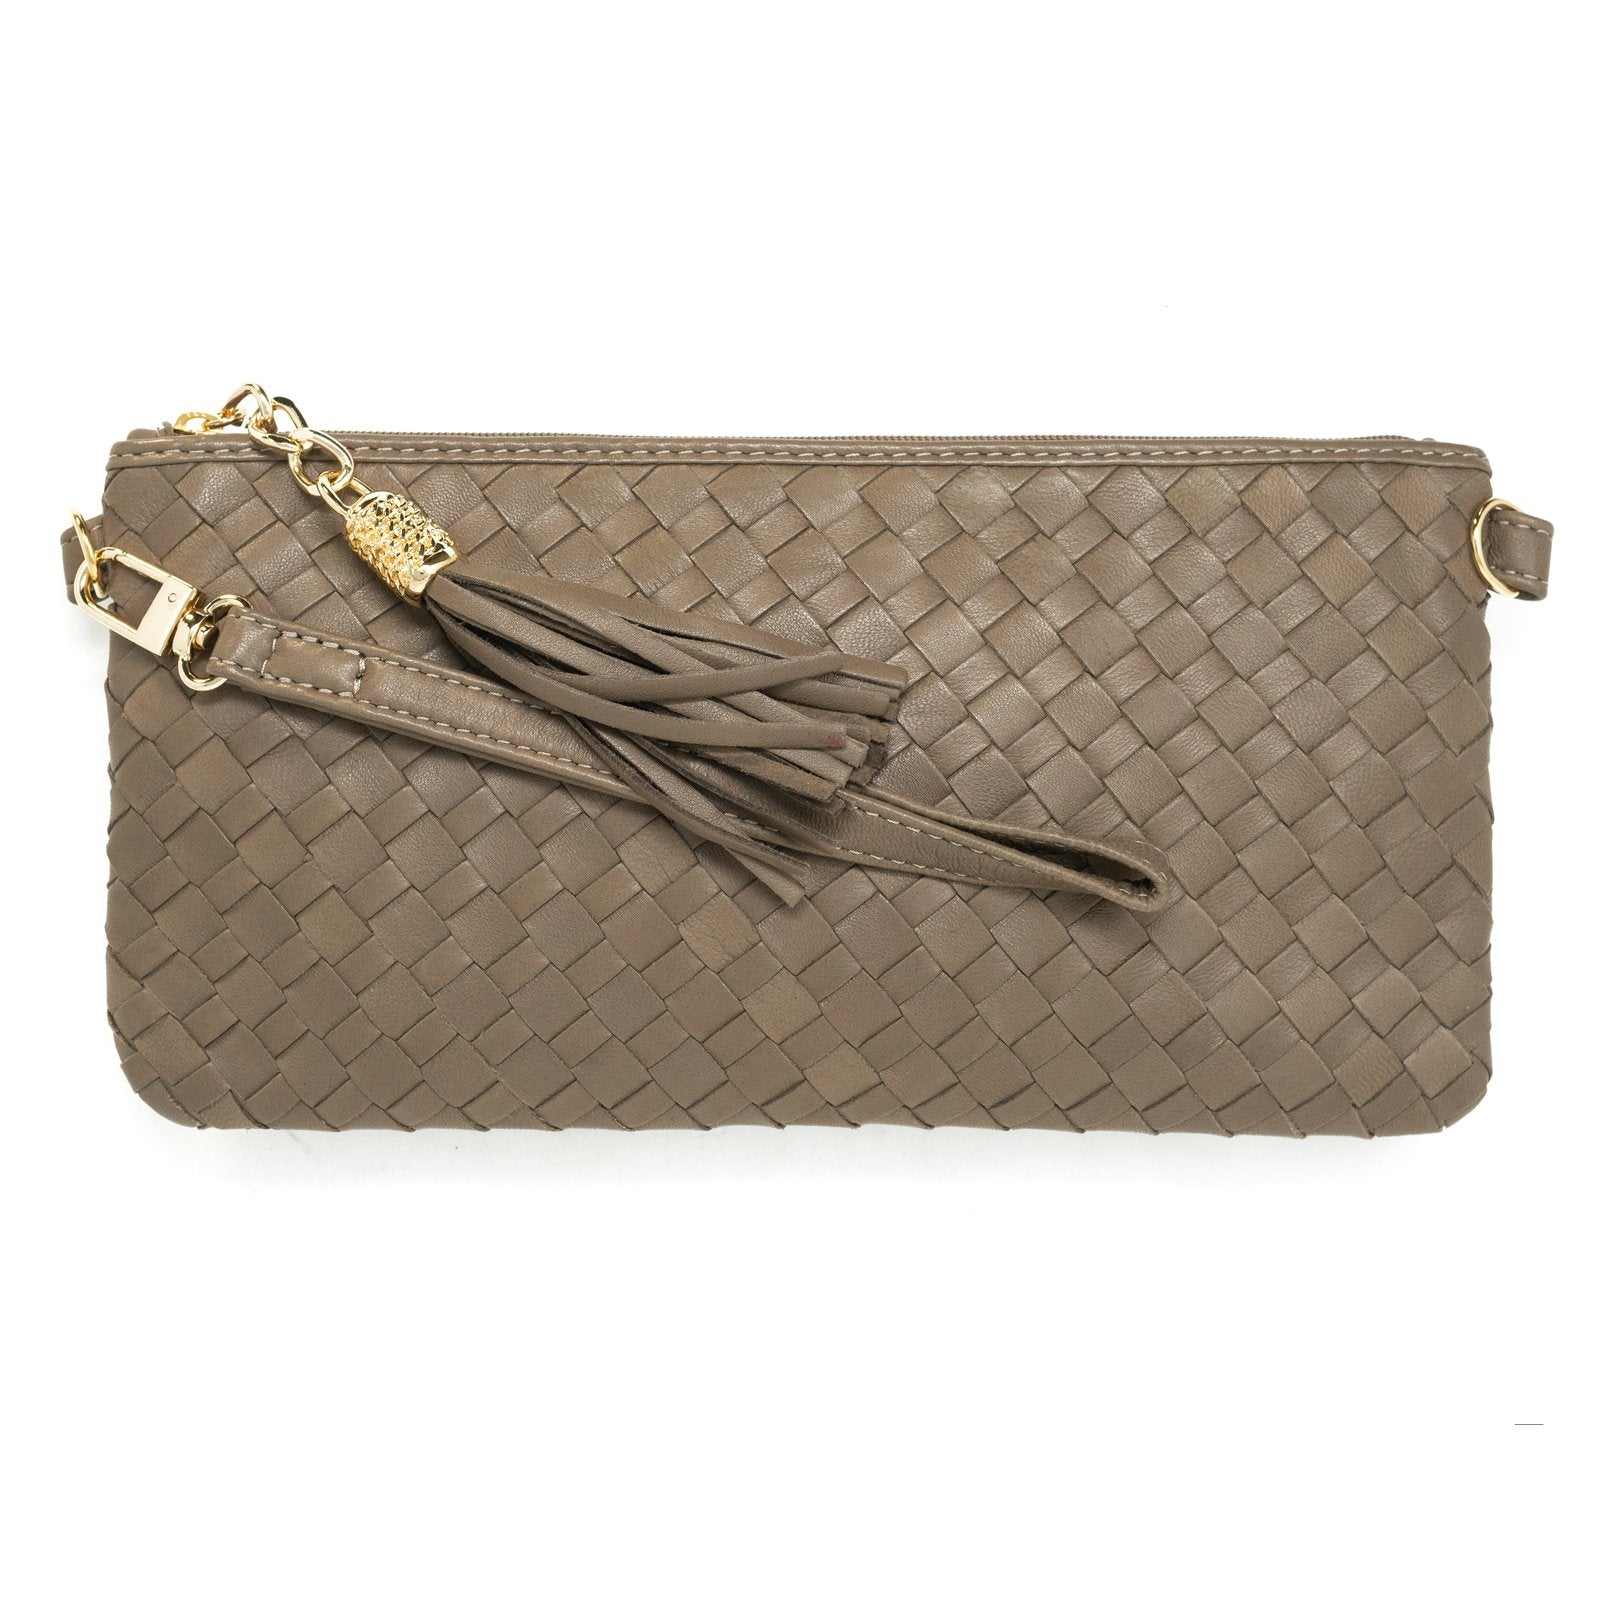 Women Intrecciato Leather Small Soft Clutch Taupe Intreccio Quadro - Jennifer Tattanelli